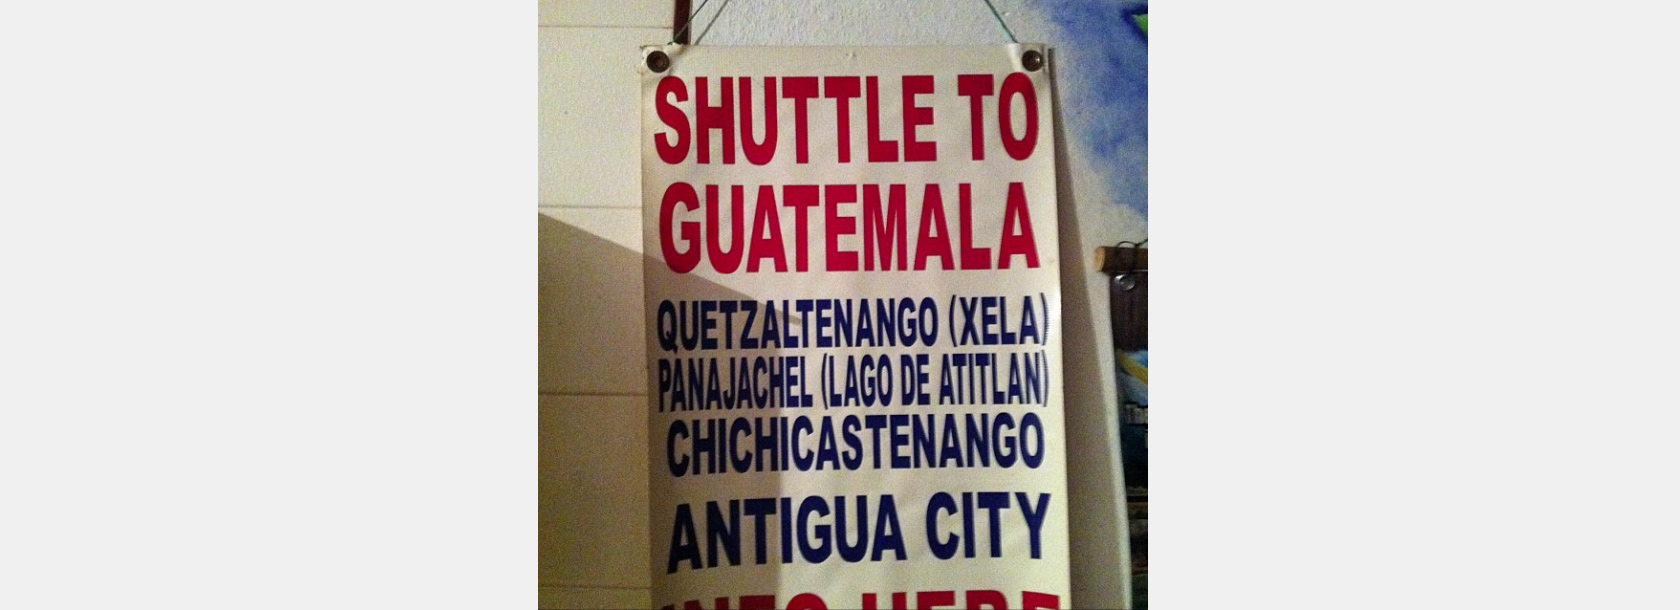 Shuttle To Guatemala